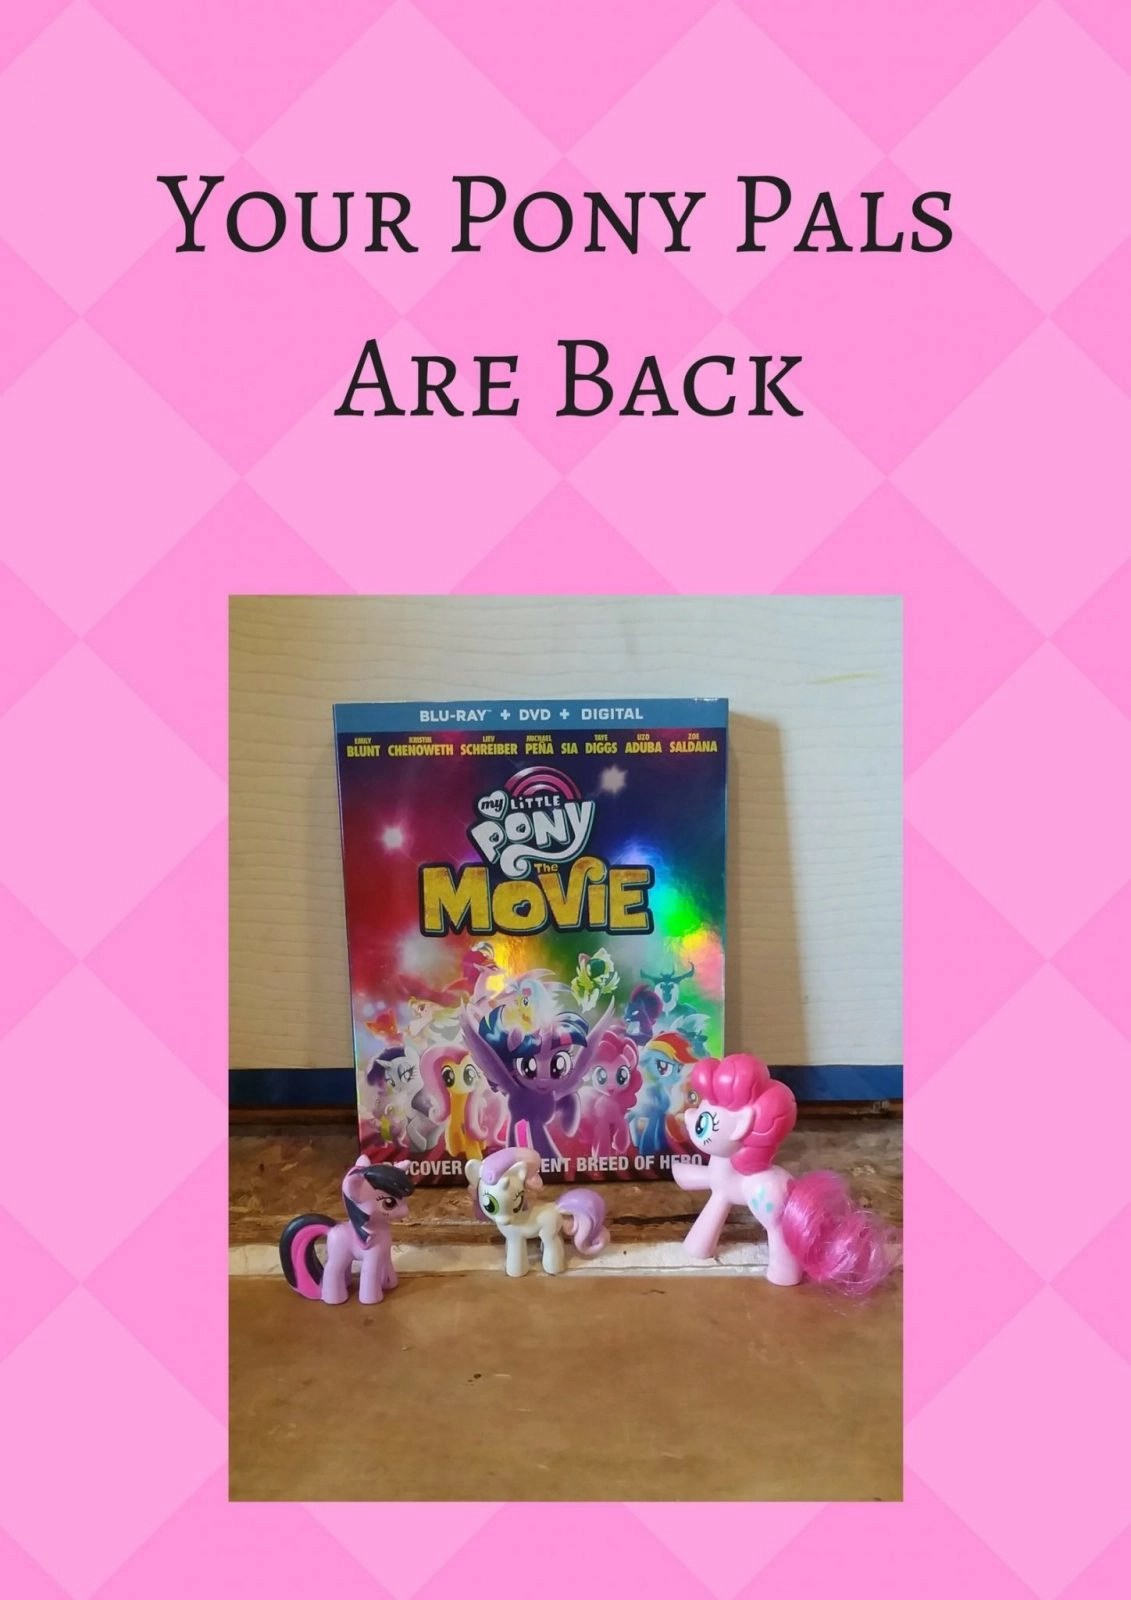 Your Pony Pals Are Back